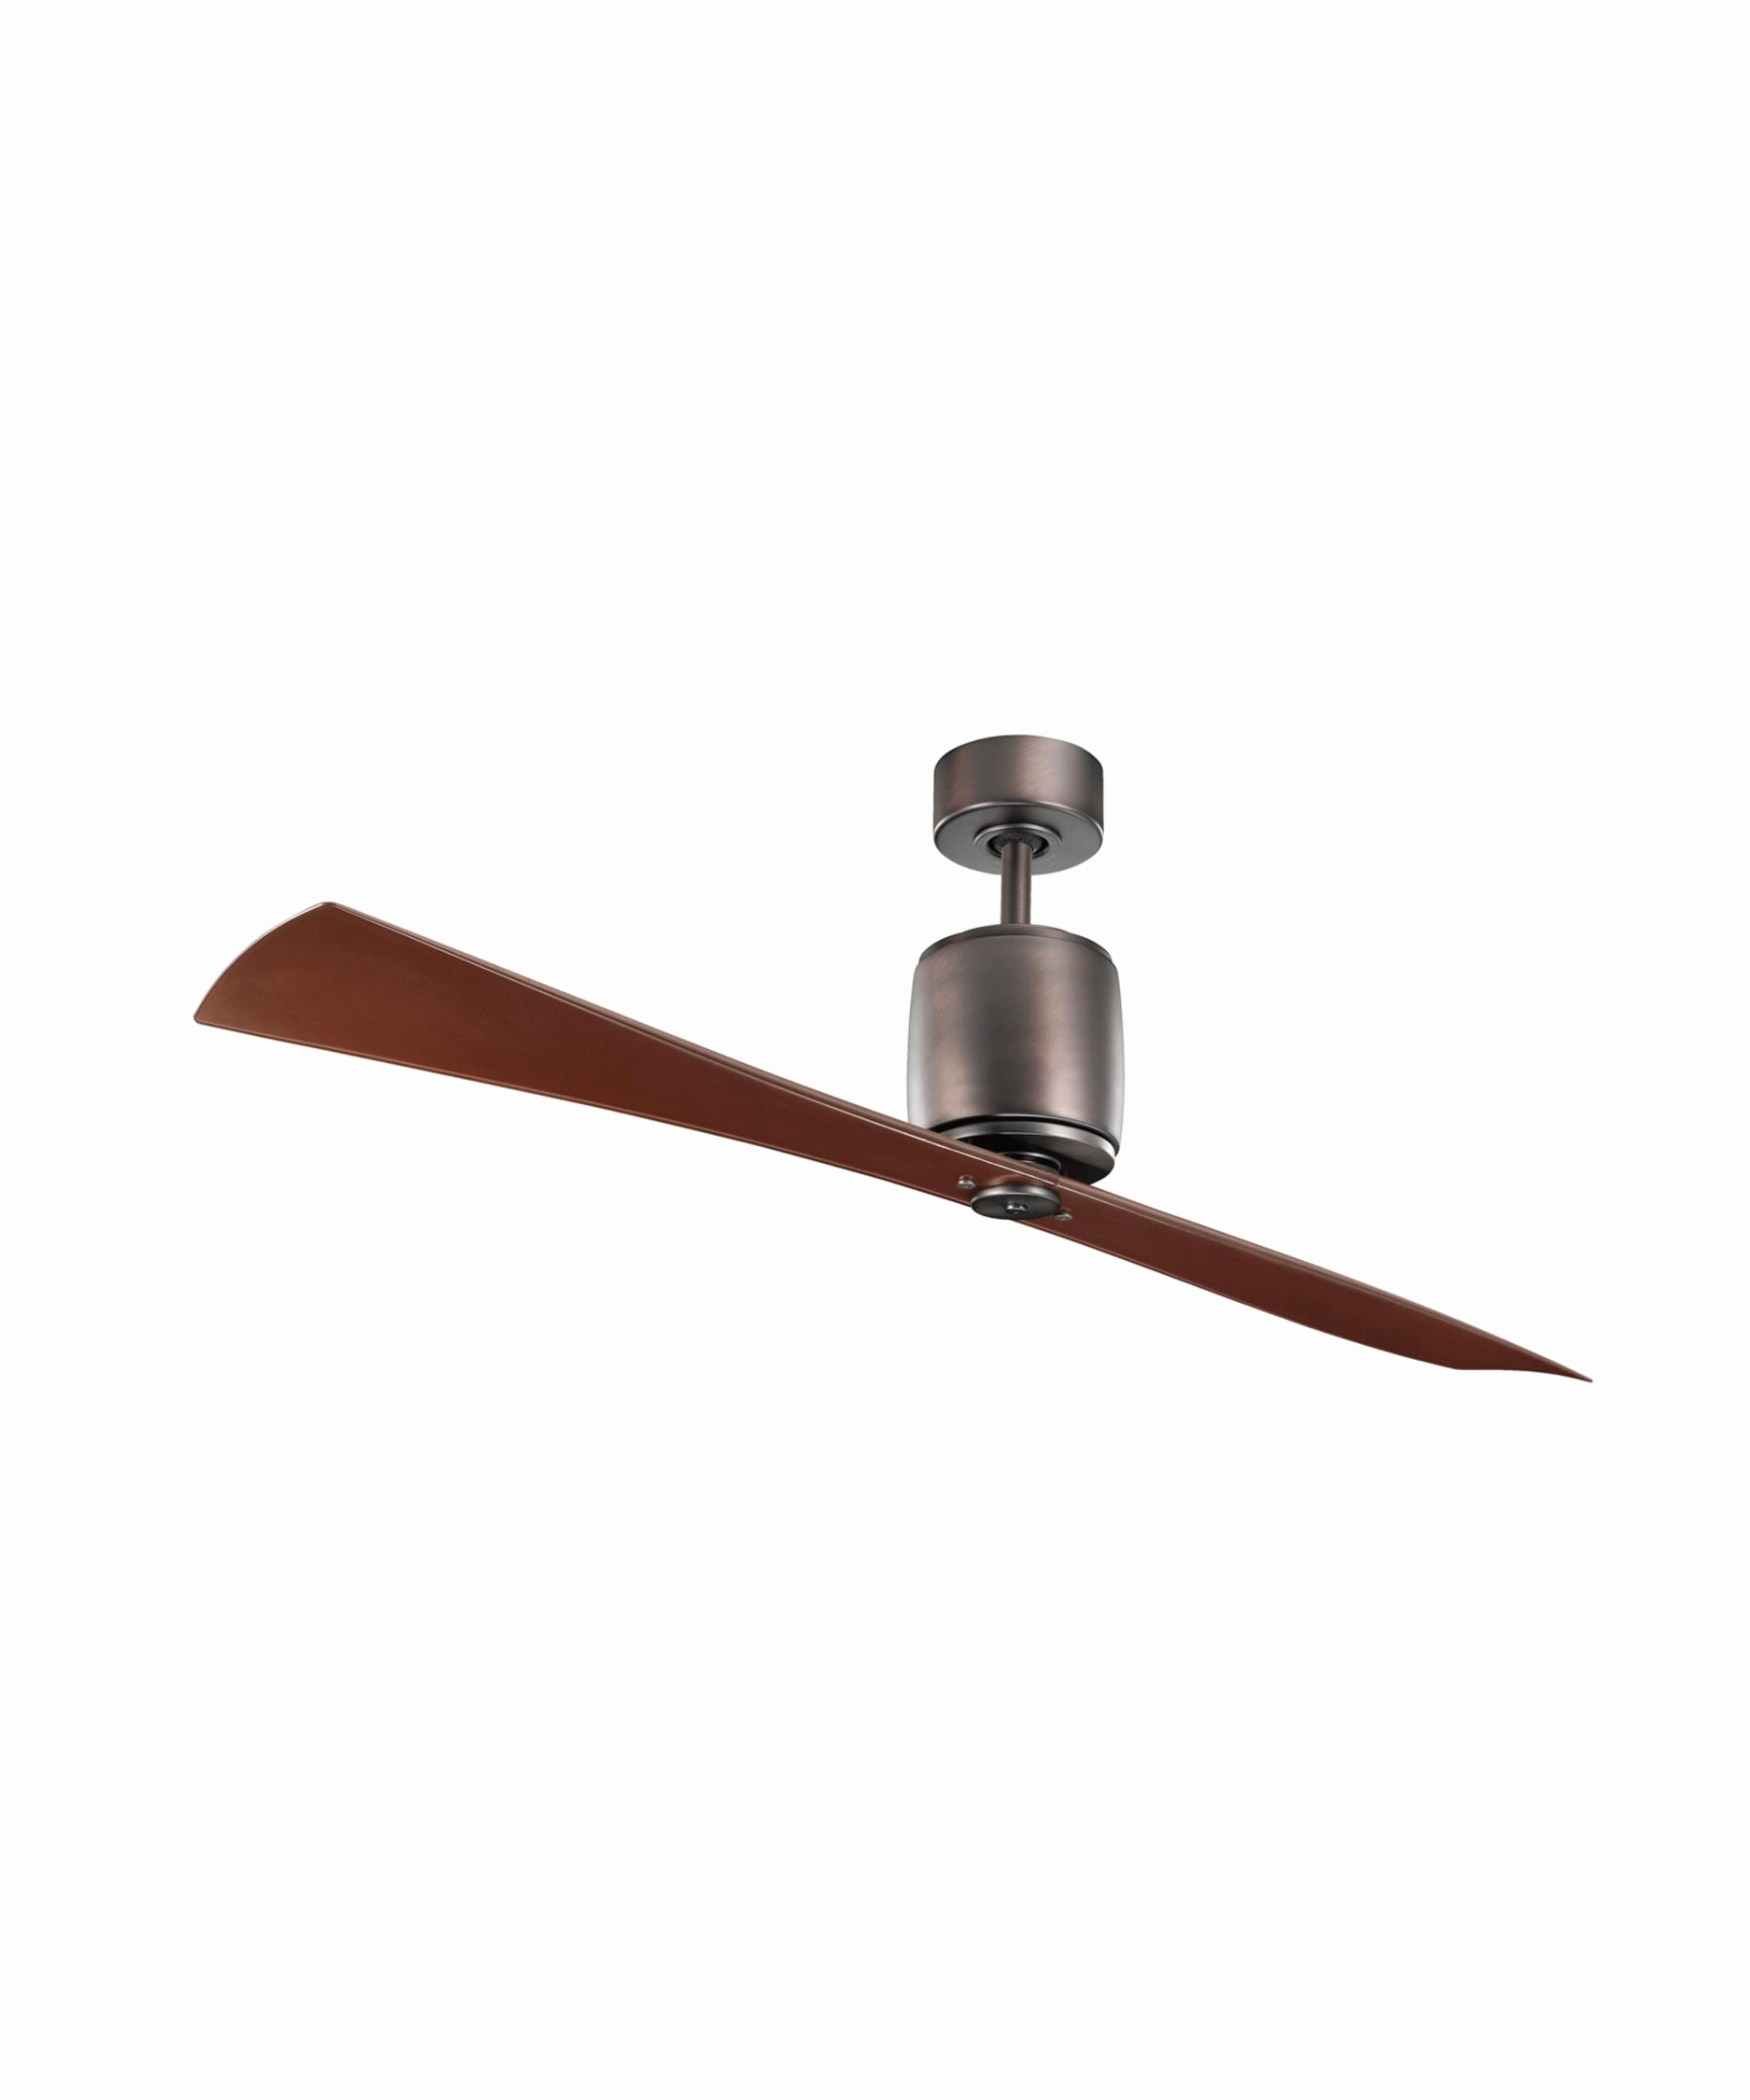 Well Known Kichler Outdoor Ceiling Fans With Lights Pertaining To Outdoor Led Ceiling Fan Awesome Kichler Ferron 60 Inch 2 Blade (View 19 of 20)